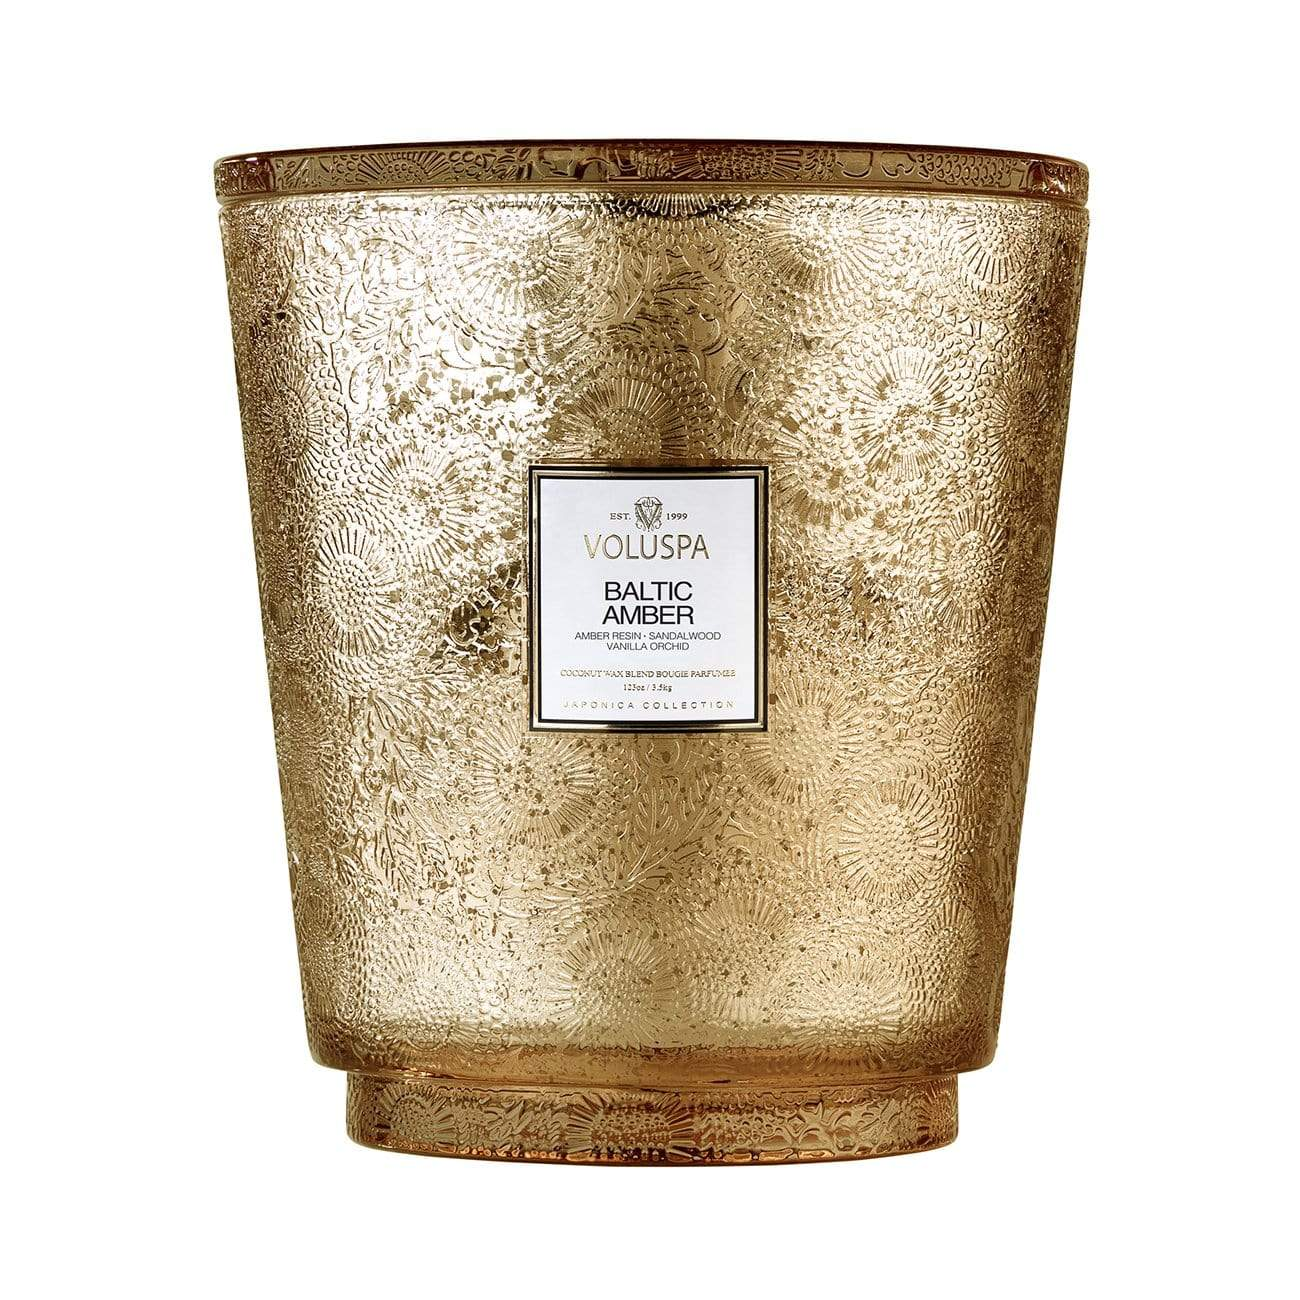 VOLUSPA Baltic Amber 250hr Hearth Candle